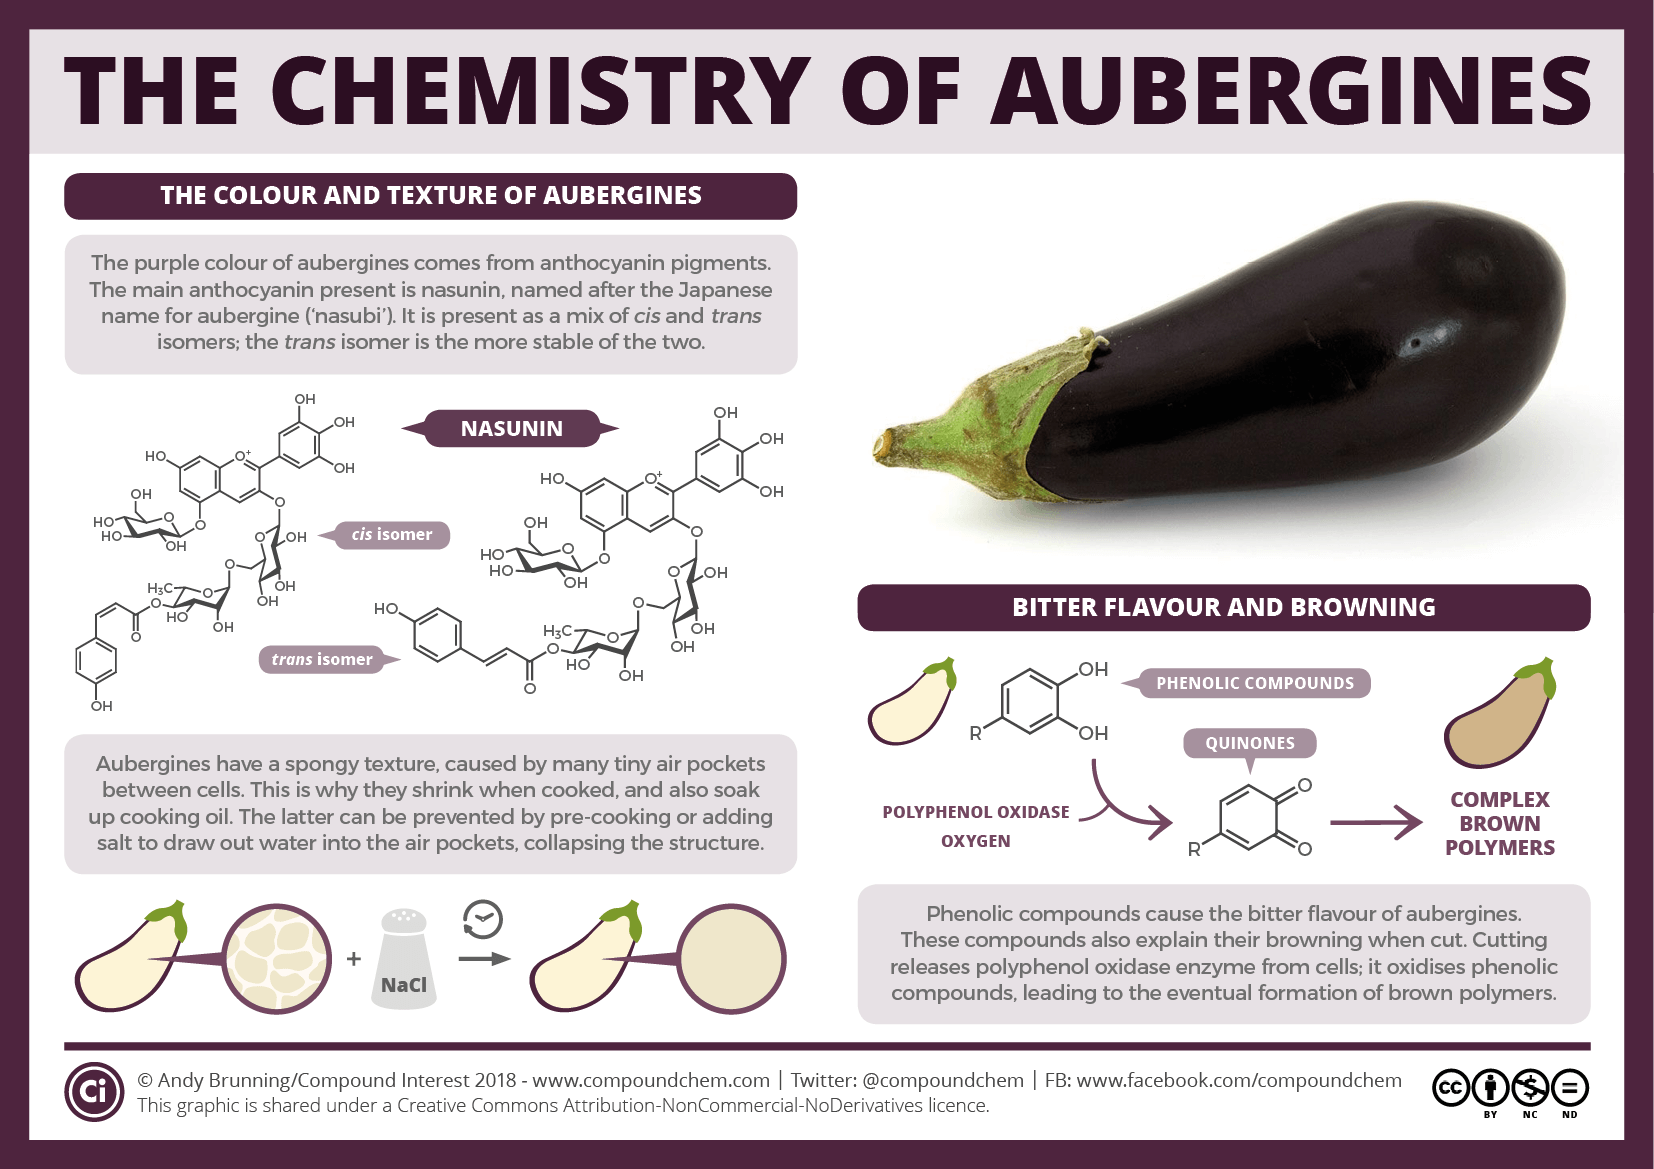 Aubergine colour, bitterness & browning | Compound Interest